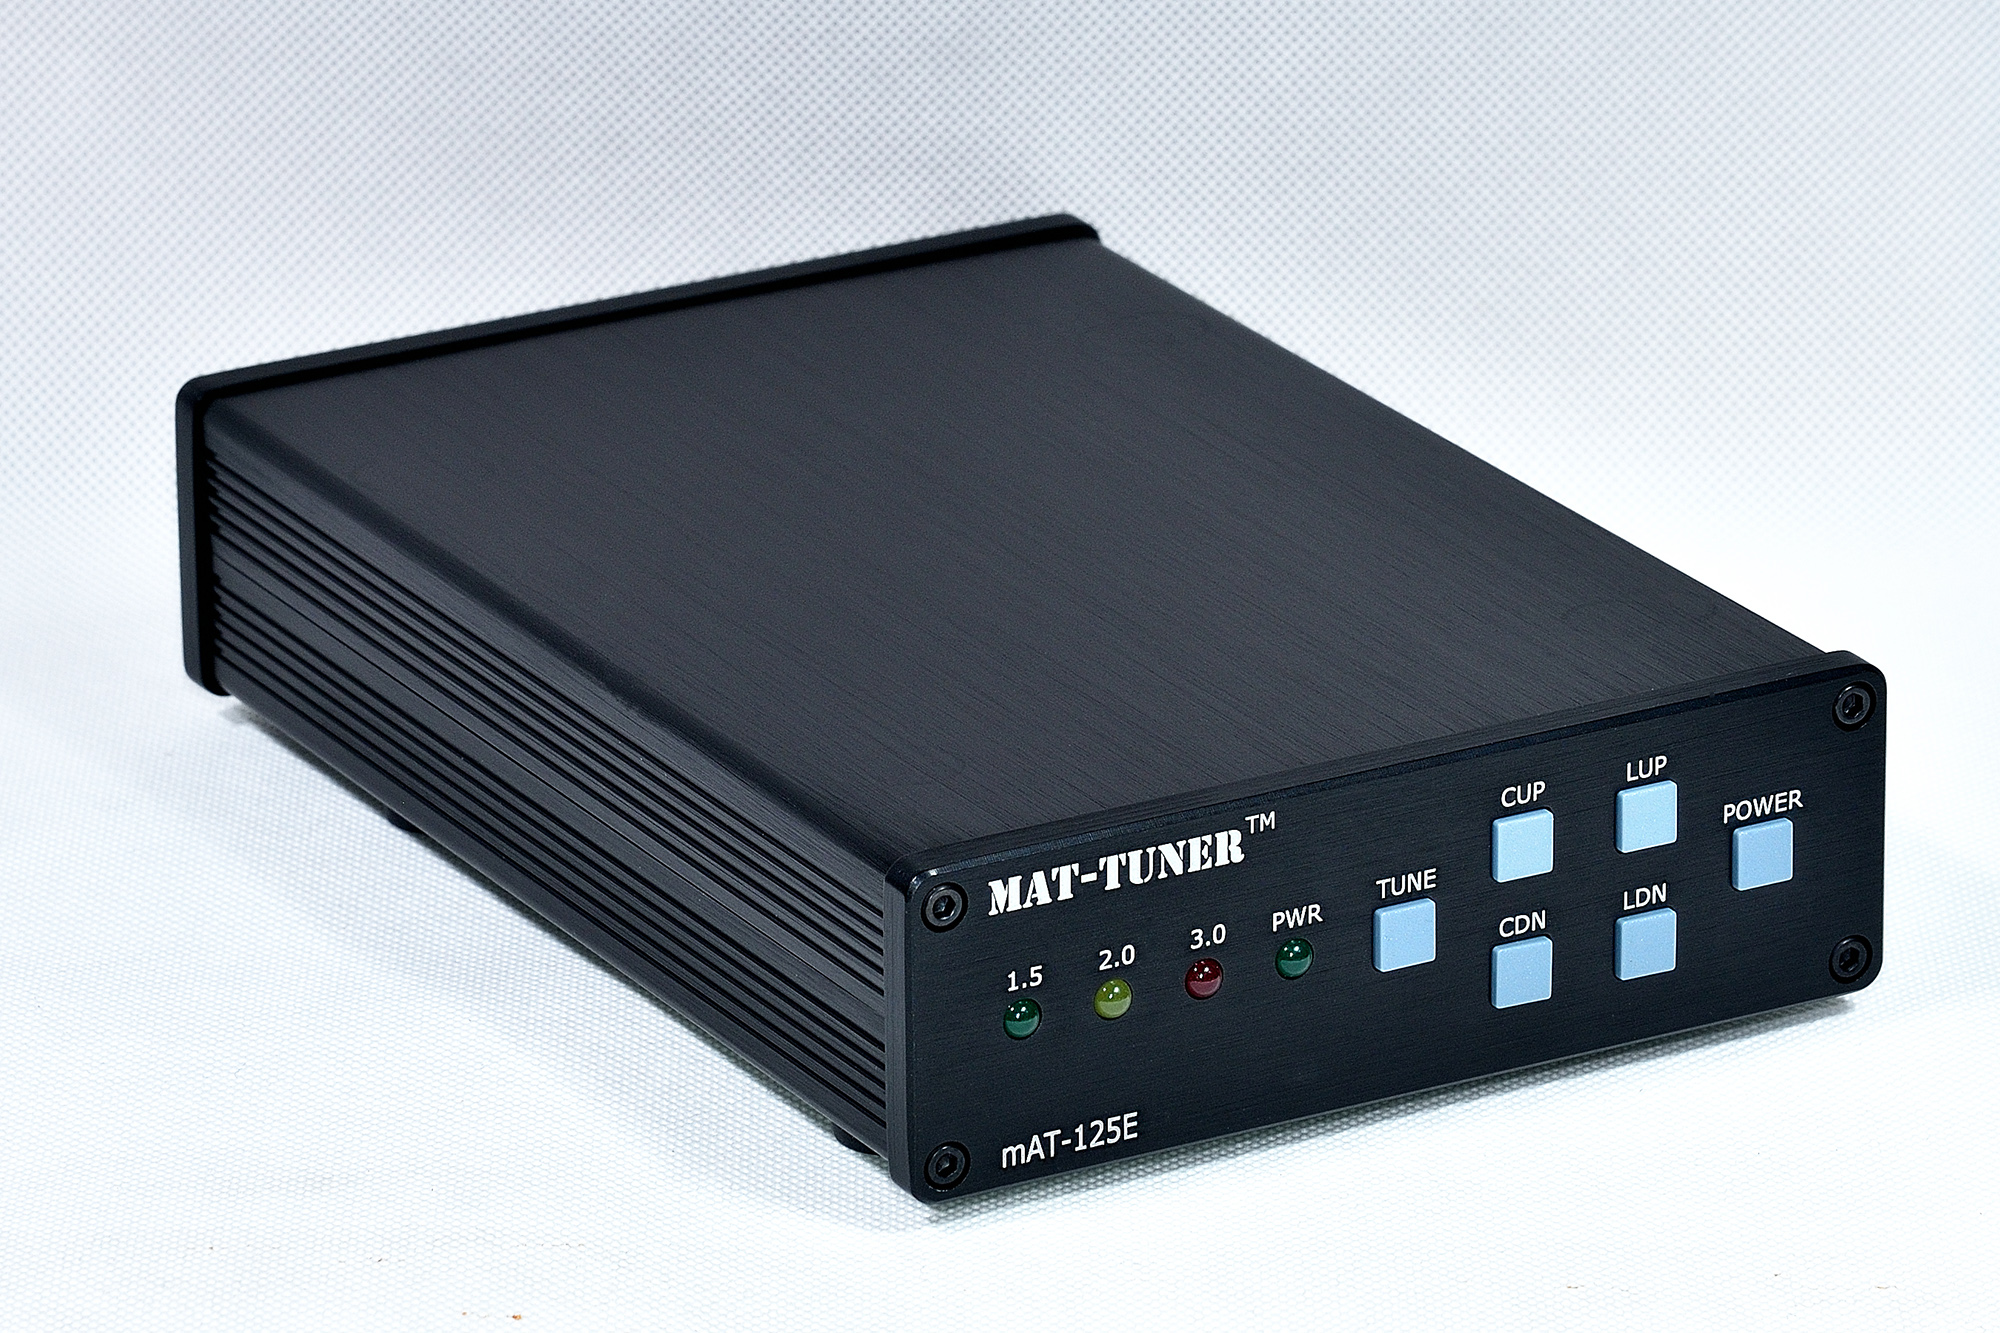 Magnetic Hold Version Mat-125E General Automatic Antenna Tuner 120W 1.8-54MHz HF Shortwave Built-in 18650 Battery